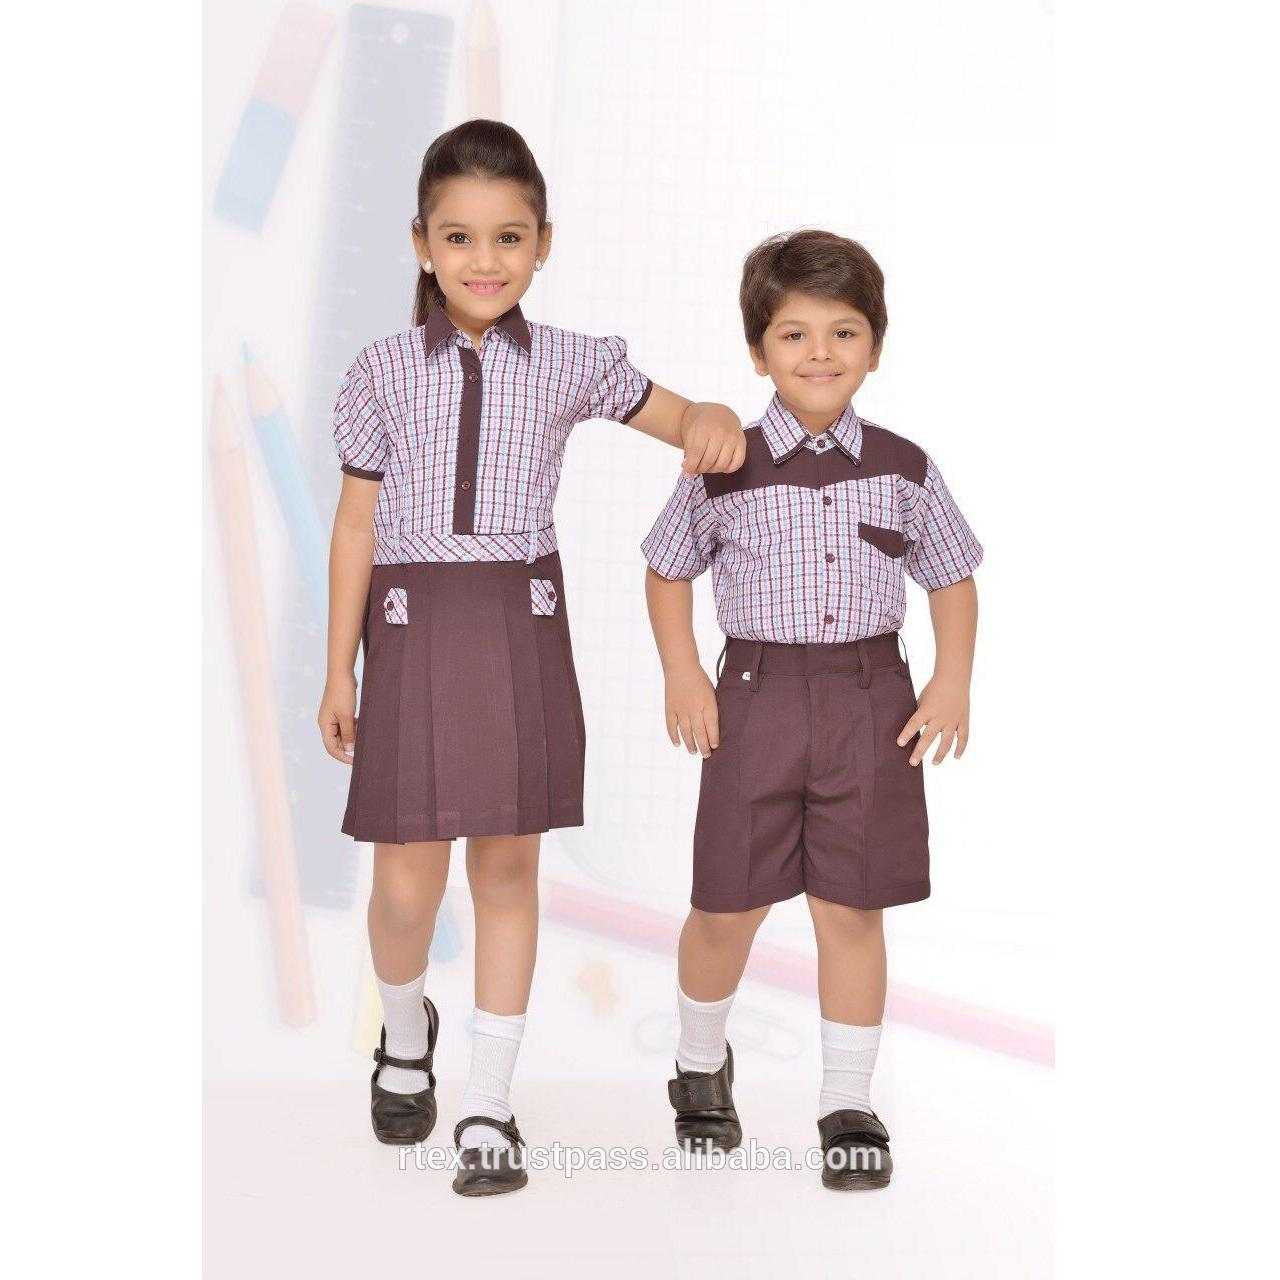 Customized school uniform with school logo embroidered or printed for all age - S32